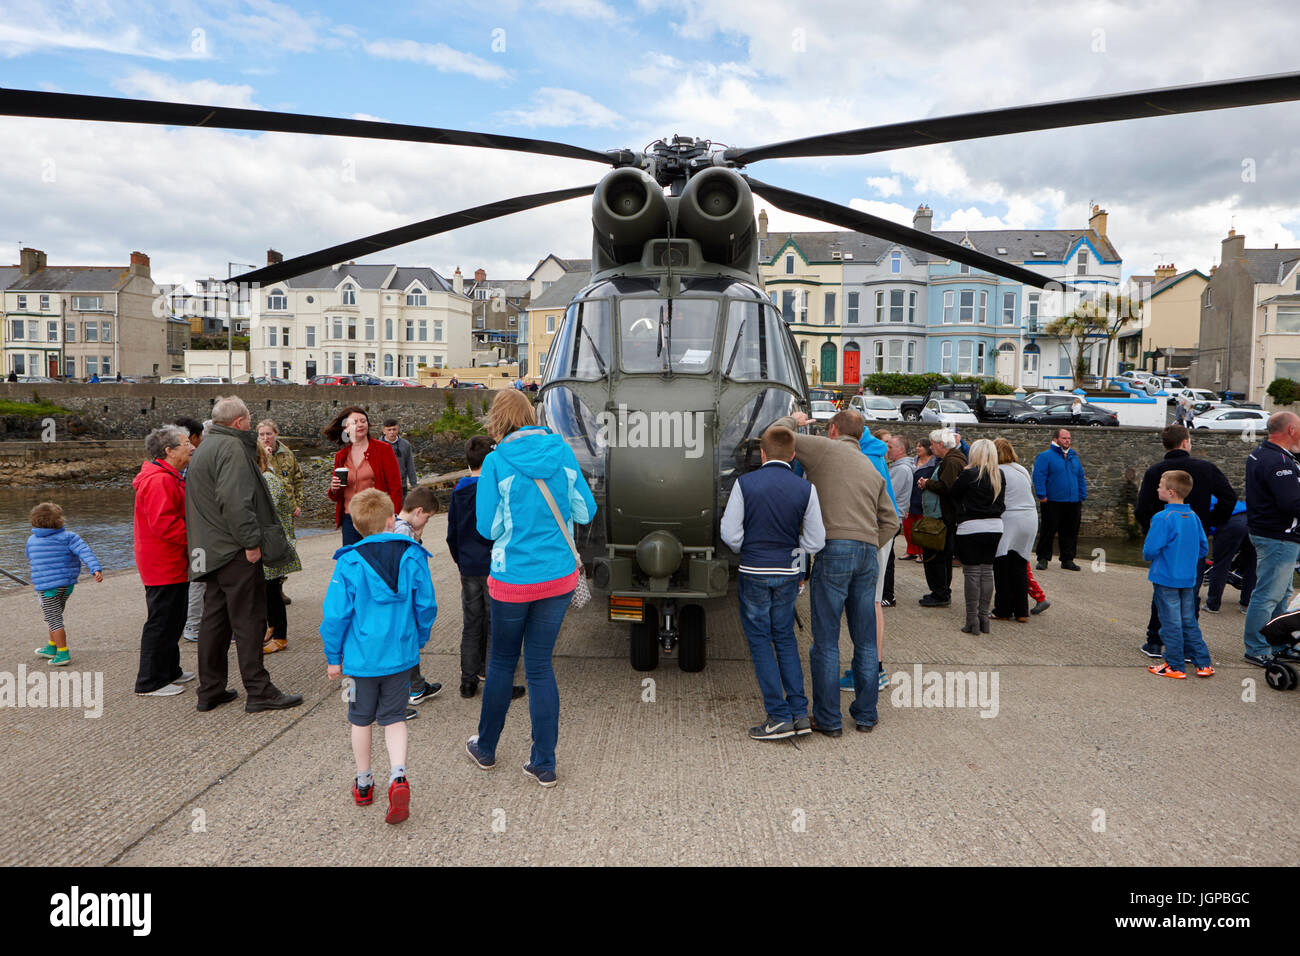 Royal Air Force XW209 westland puma helicopter on display to the public armed forces day bangor northern ireland - Stock Image